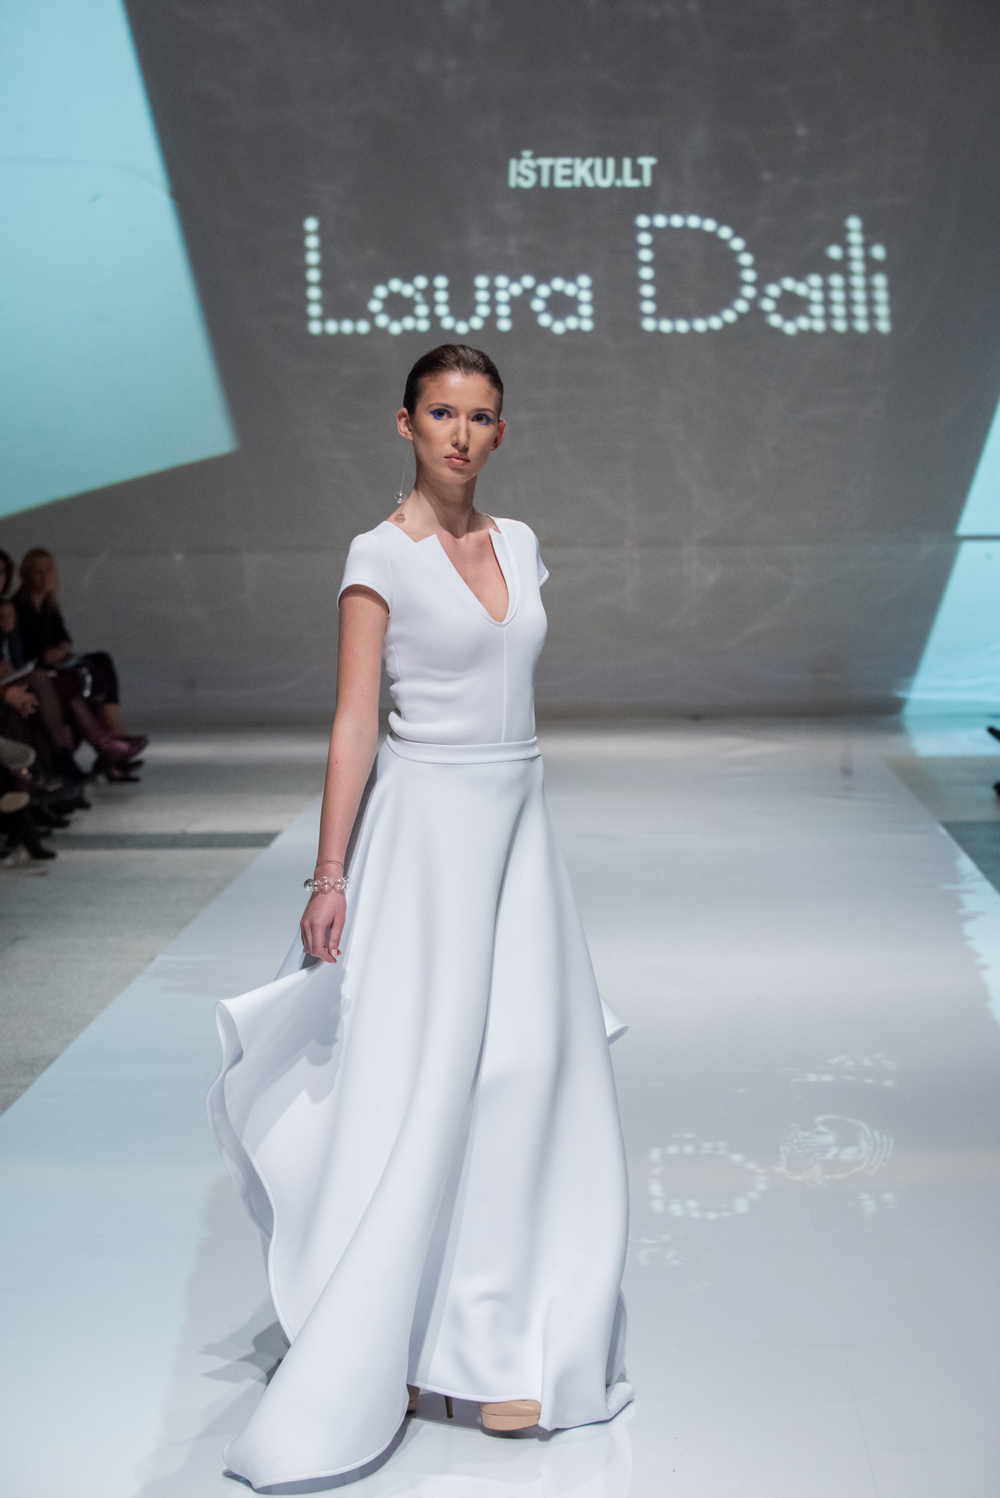 Laura Daili Bridal Collection 2017 Isteku lt (7)